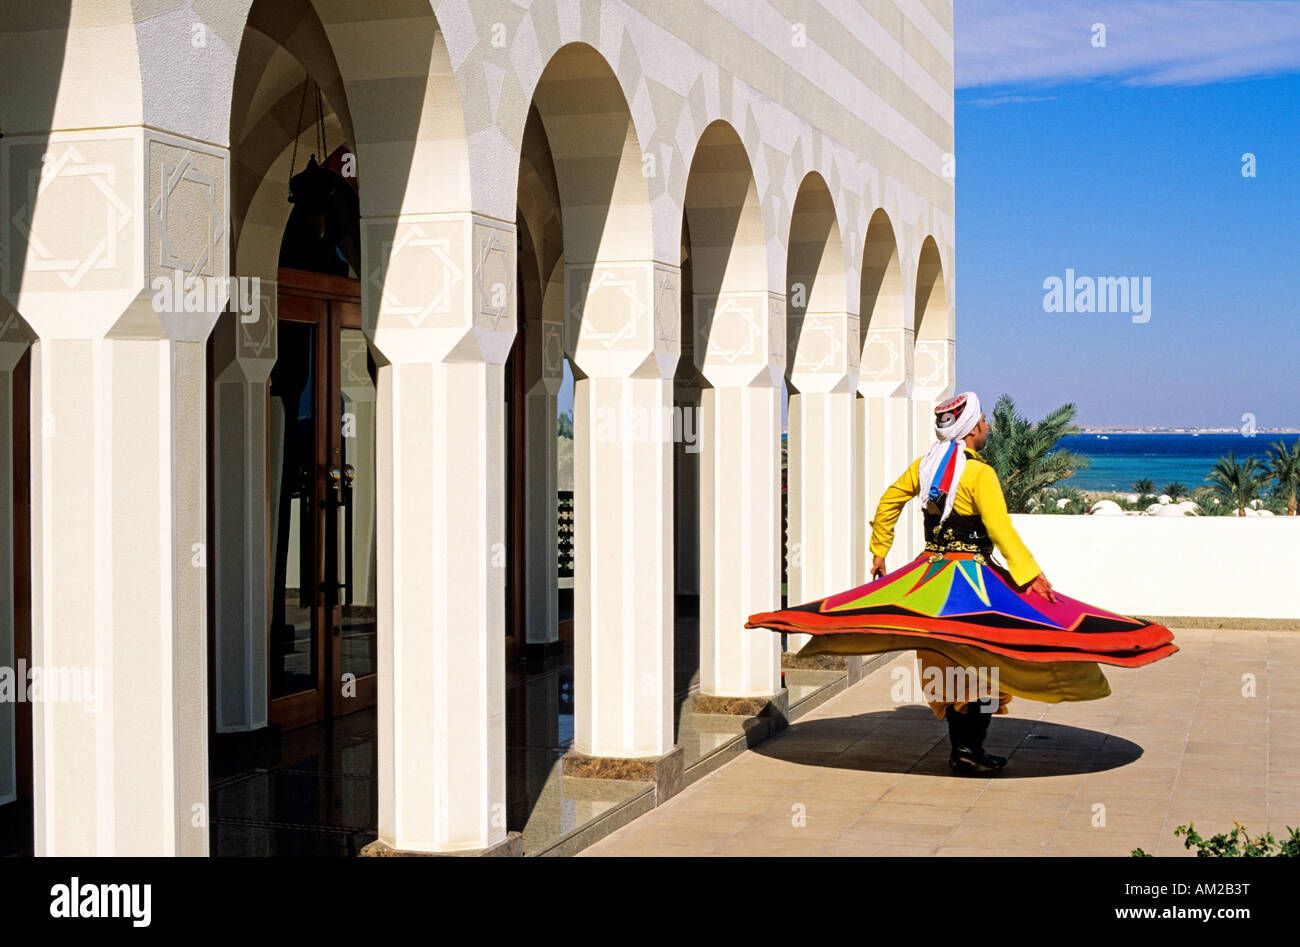 Egypt, Hurghada, The Oberoi Hotels & Resort, Sahl Hasheesh 5 star hotel, whirling dervish Stock Photo